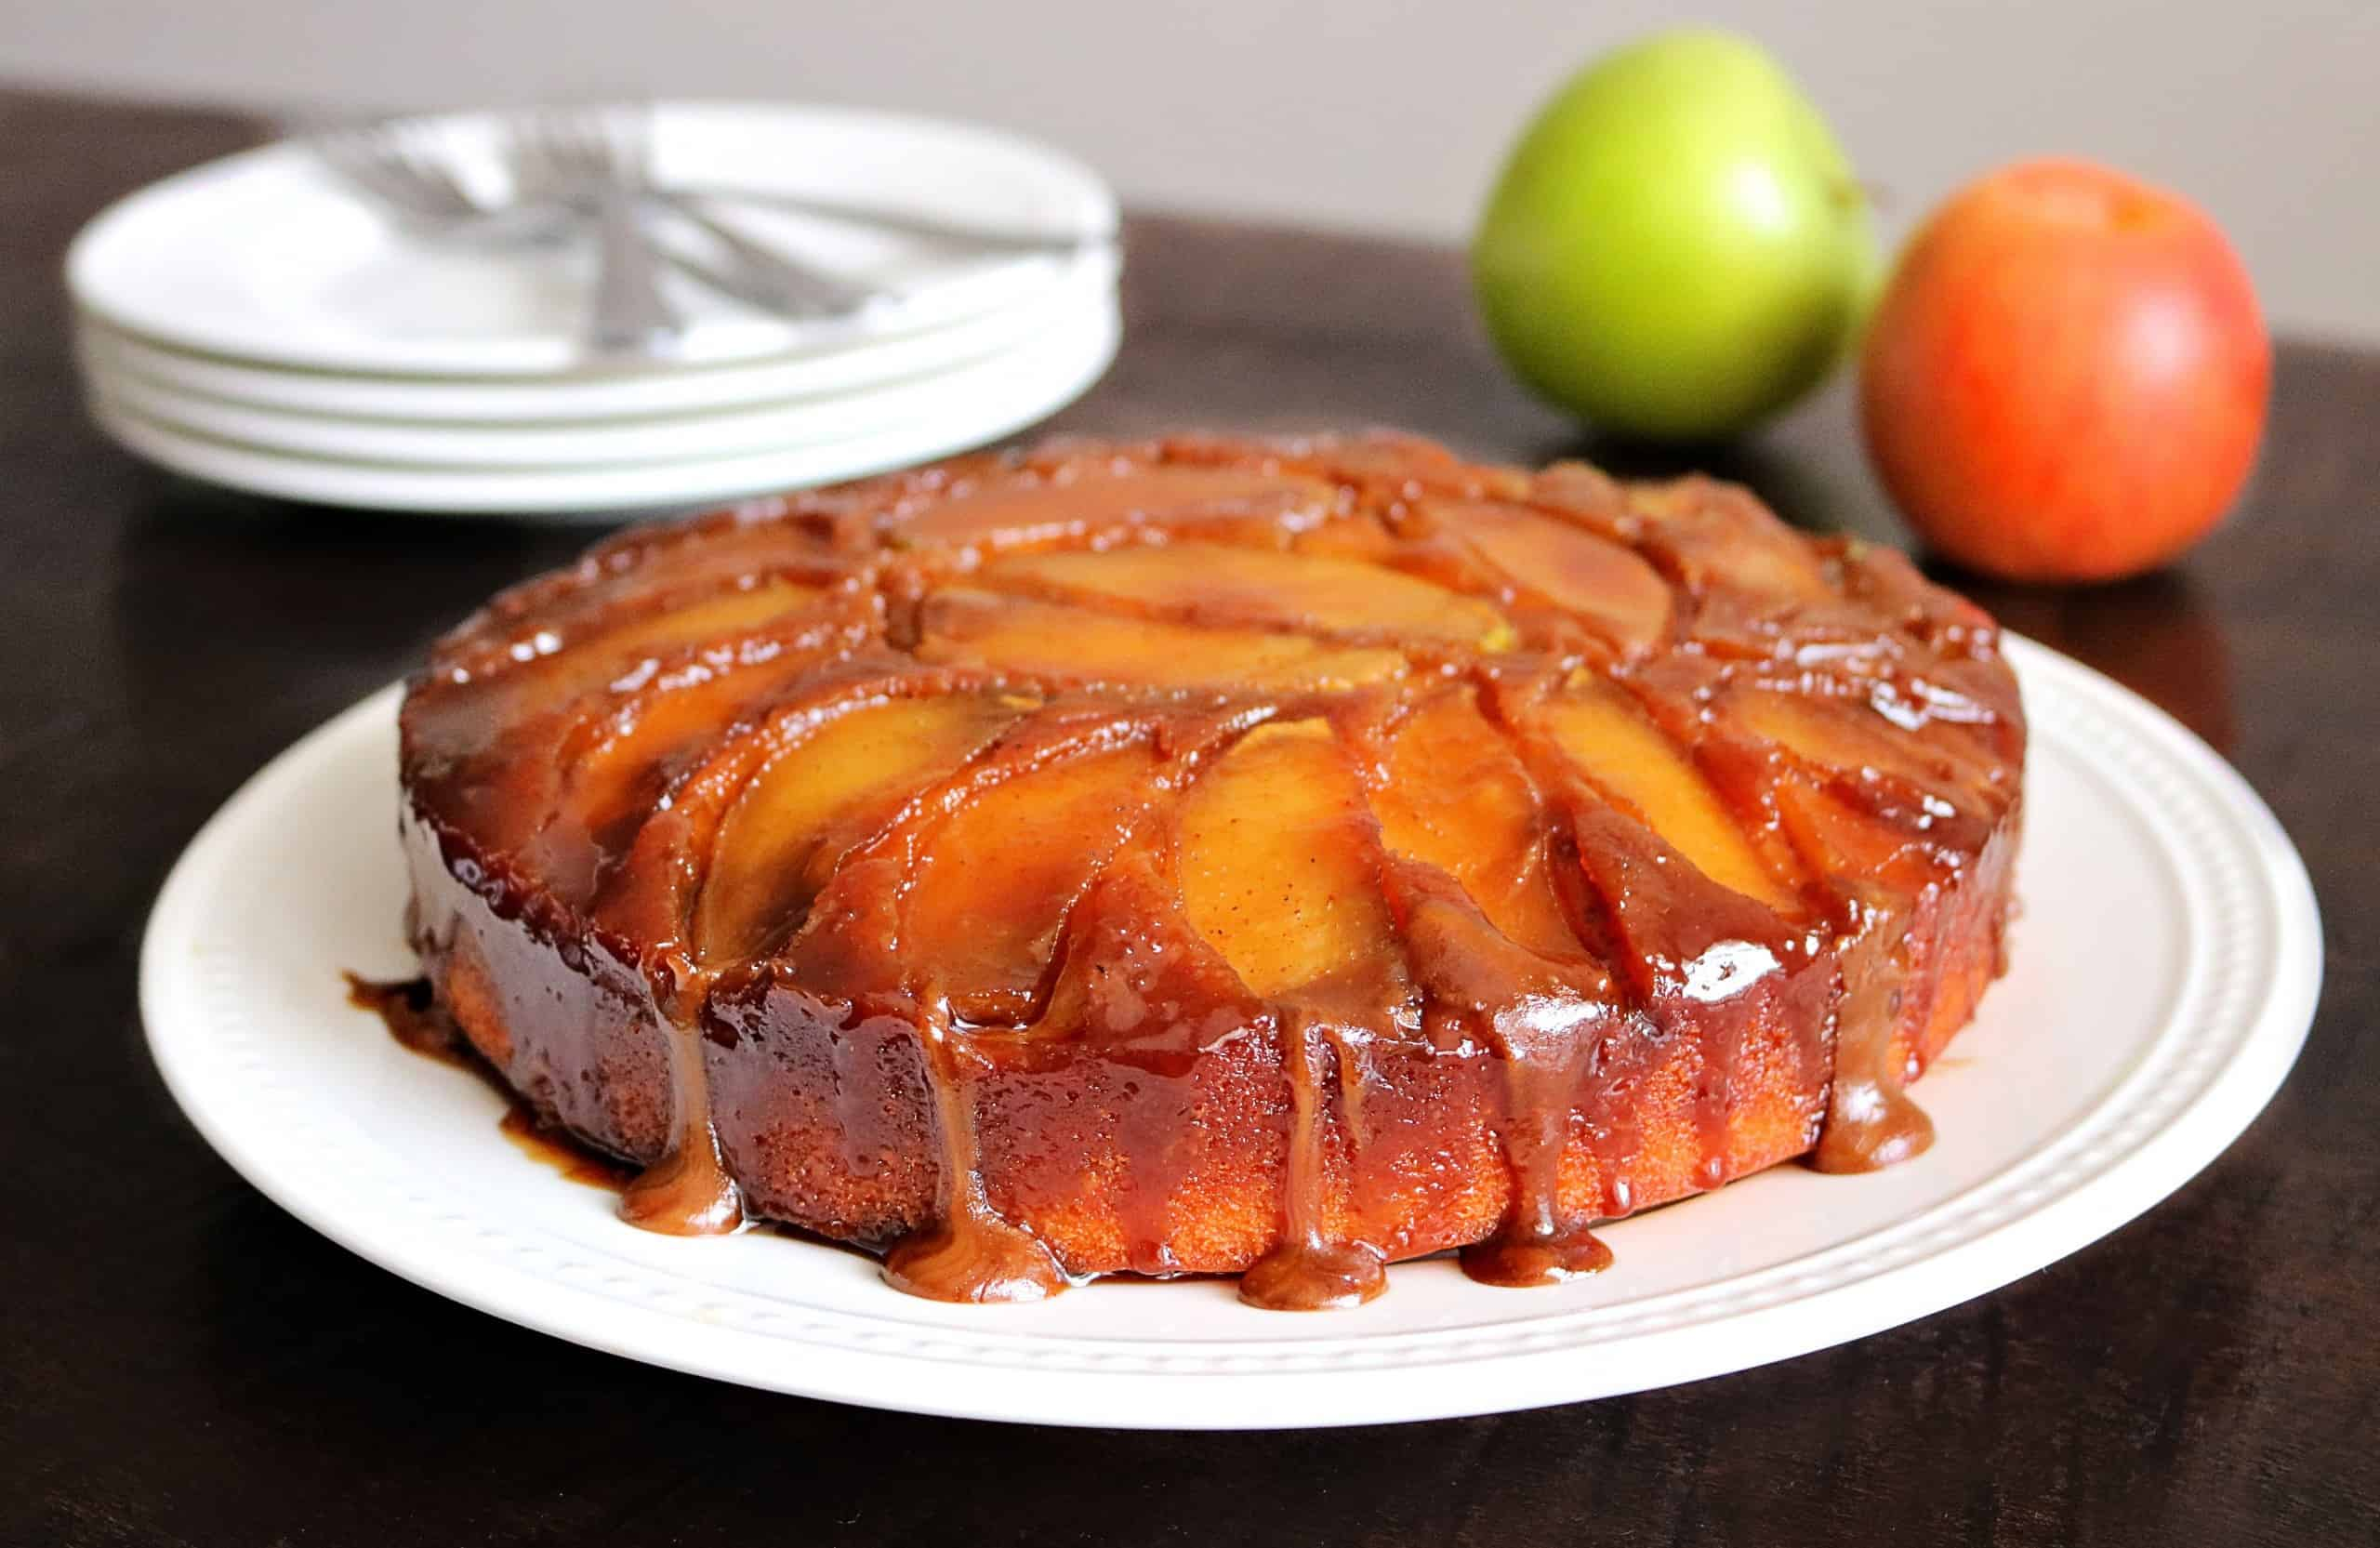 Get my Easy Caramel Apple Upside Down Cake recipe for a beautiful and delicious Fall cake everyone will love! This is the best caramel apple upside down cake you'll ever eat and it features a homemade vanilla cake, topped with a delicious caramel sauce and fresh sliced apples, and baked upside down to perfection. #upsidedowncake #fallcake #applecake #caramelapplecake